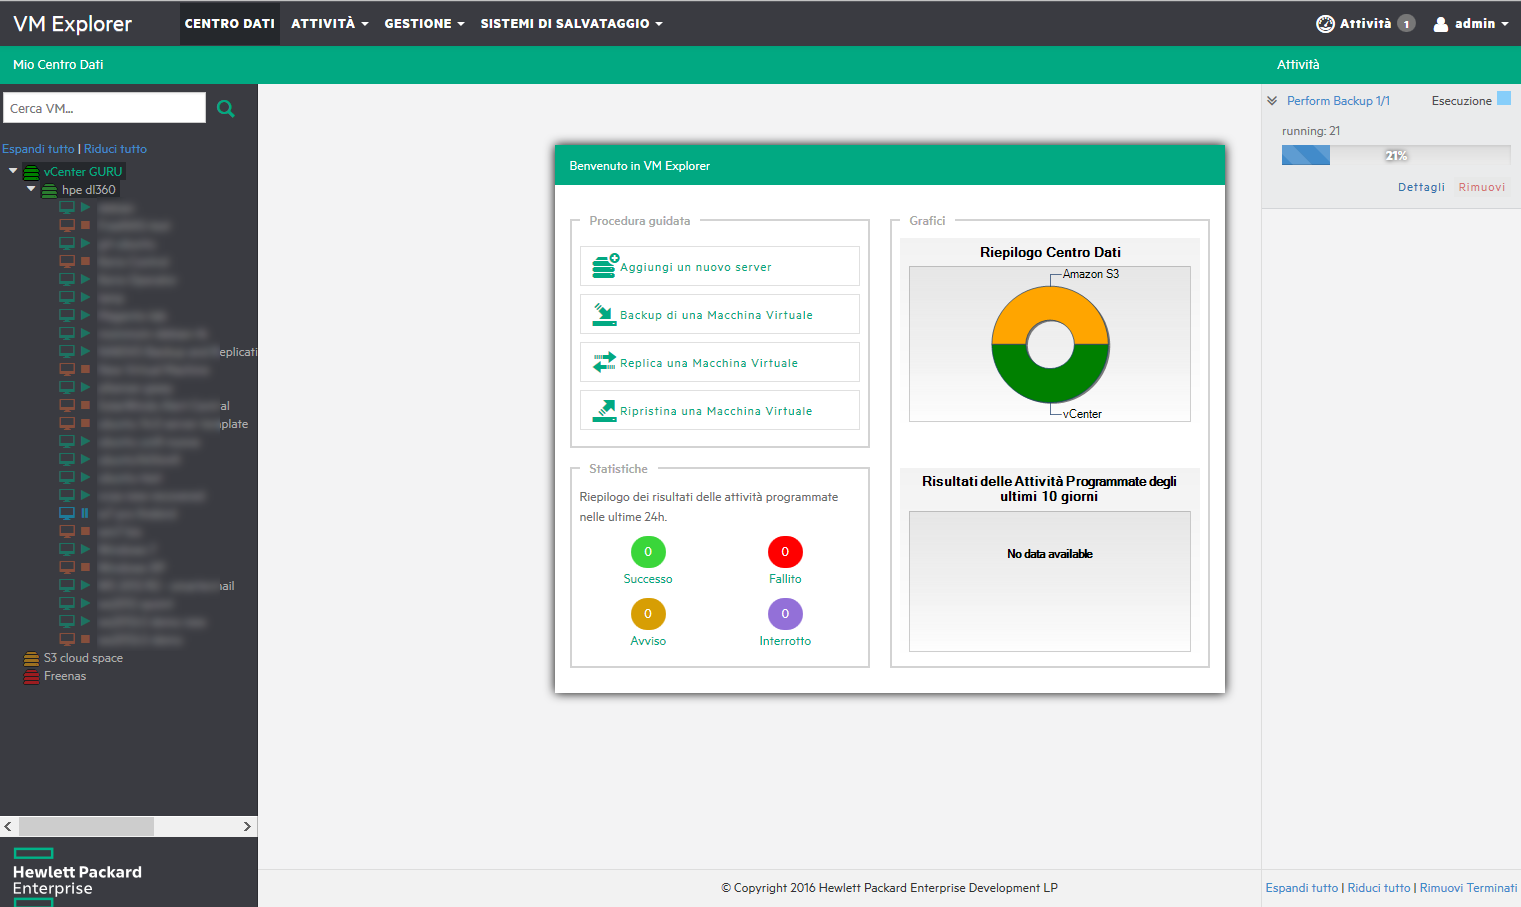 VM Explorer: the new tool by HP Enterprise for VMware vSphere and